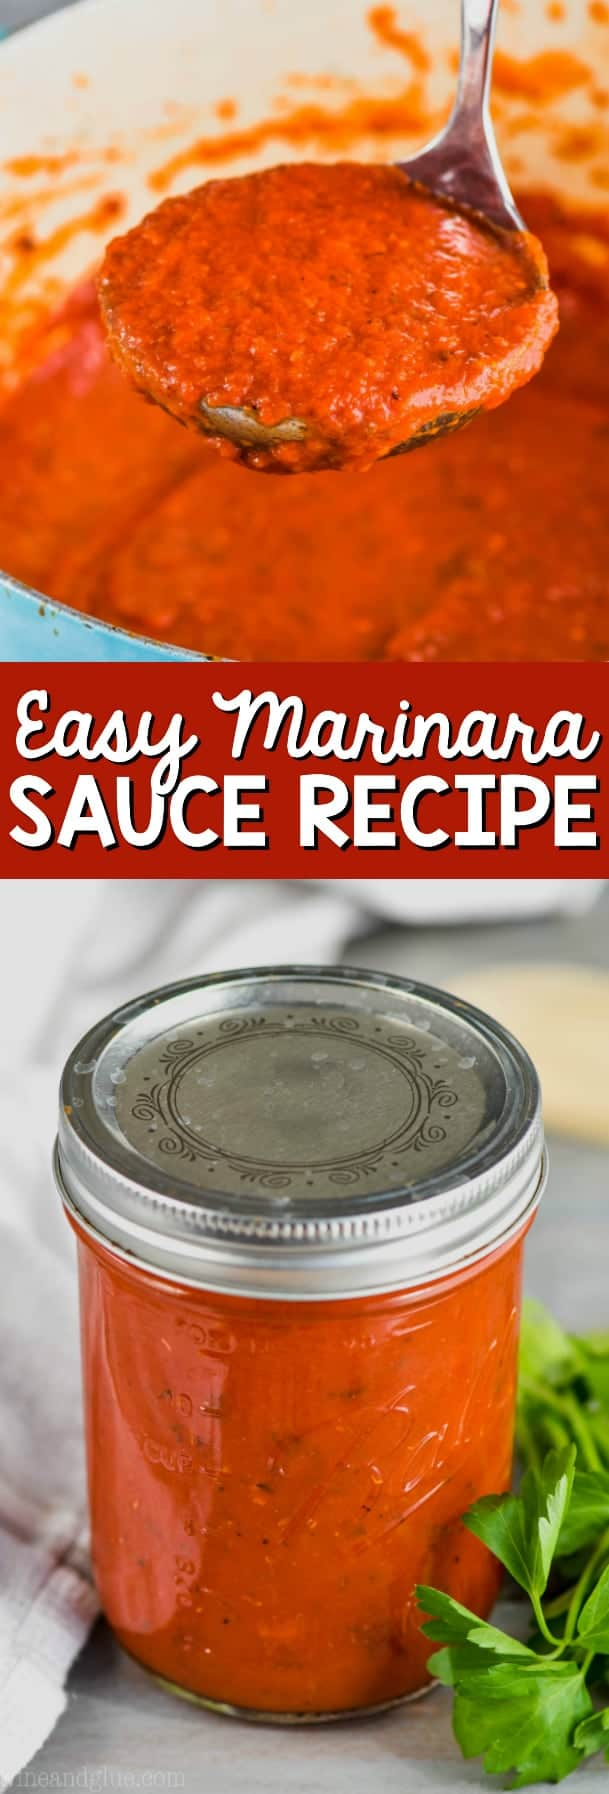 marinara sauce recipe with tomato sauce in a dutch oven